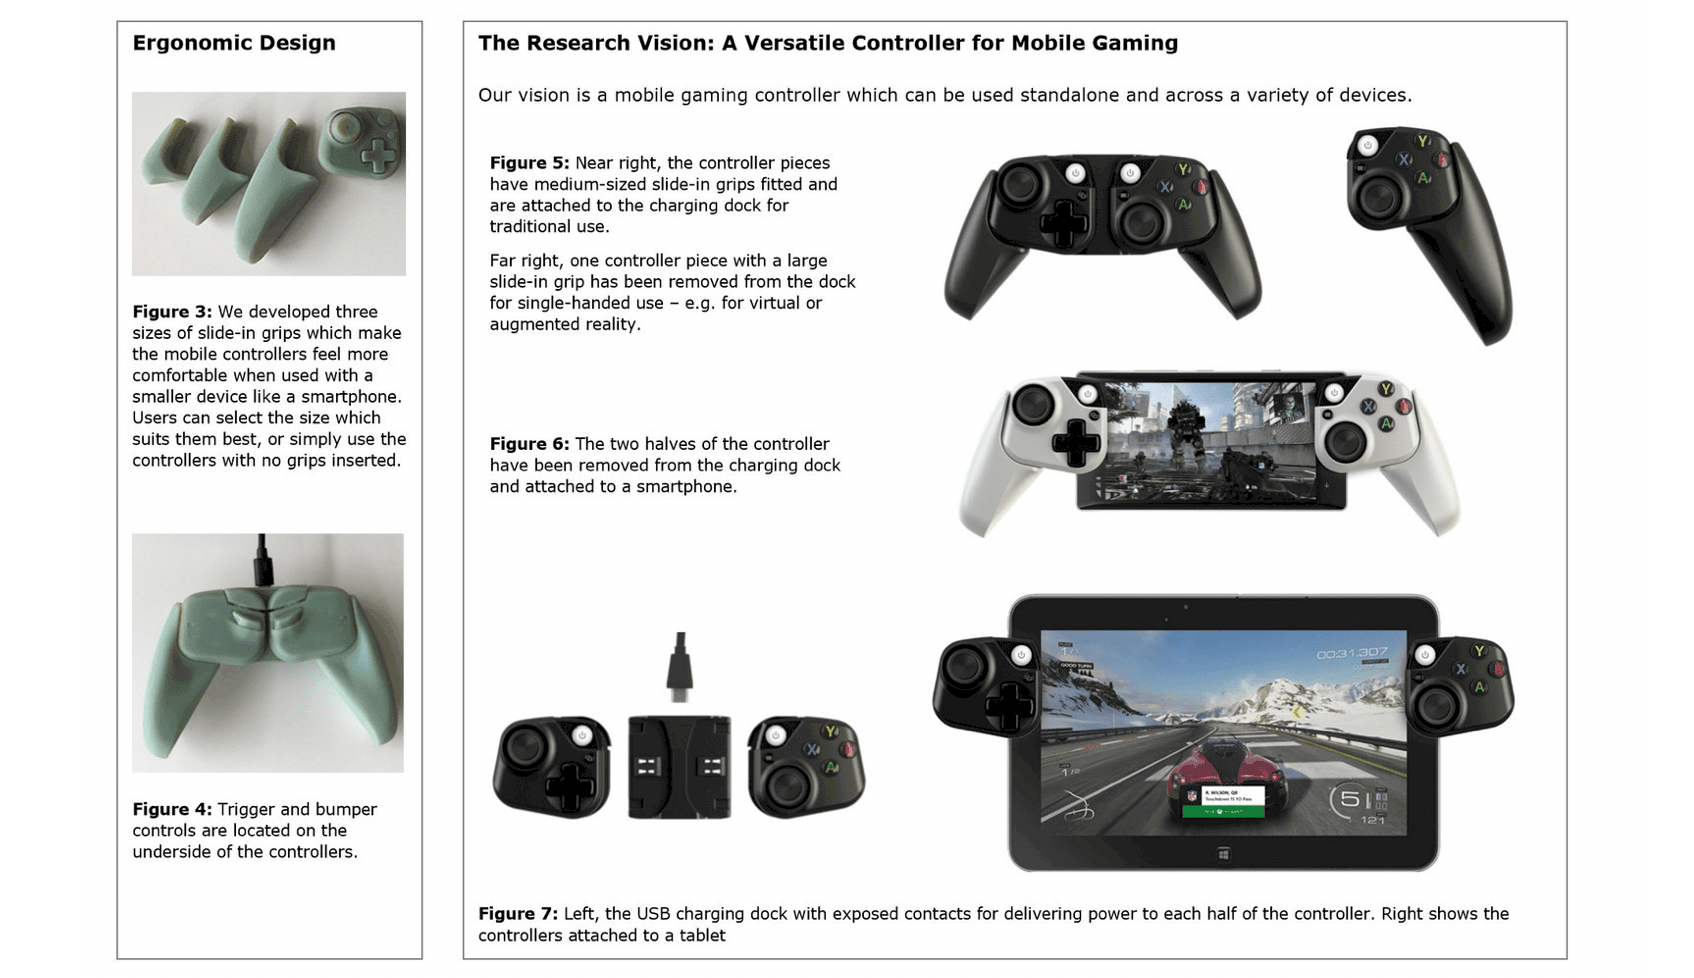 This patented mobile controller from Microsoft may bring console